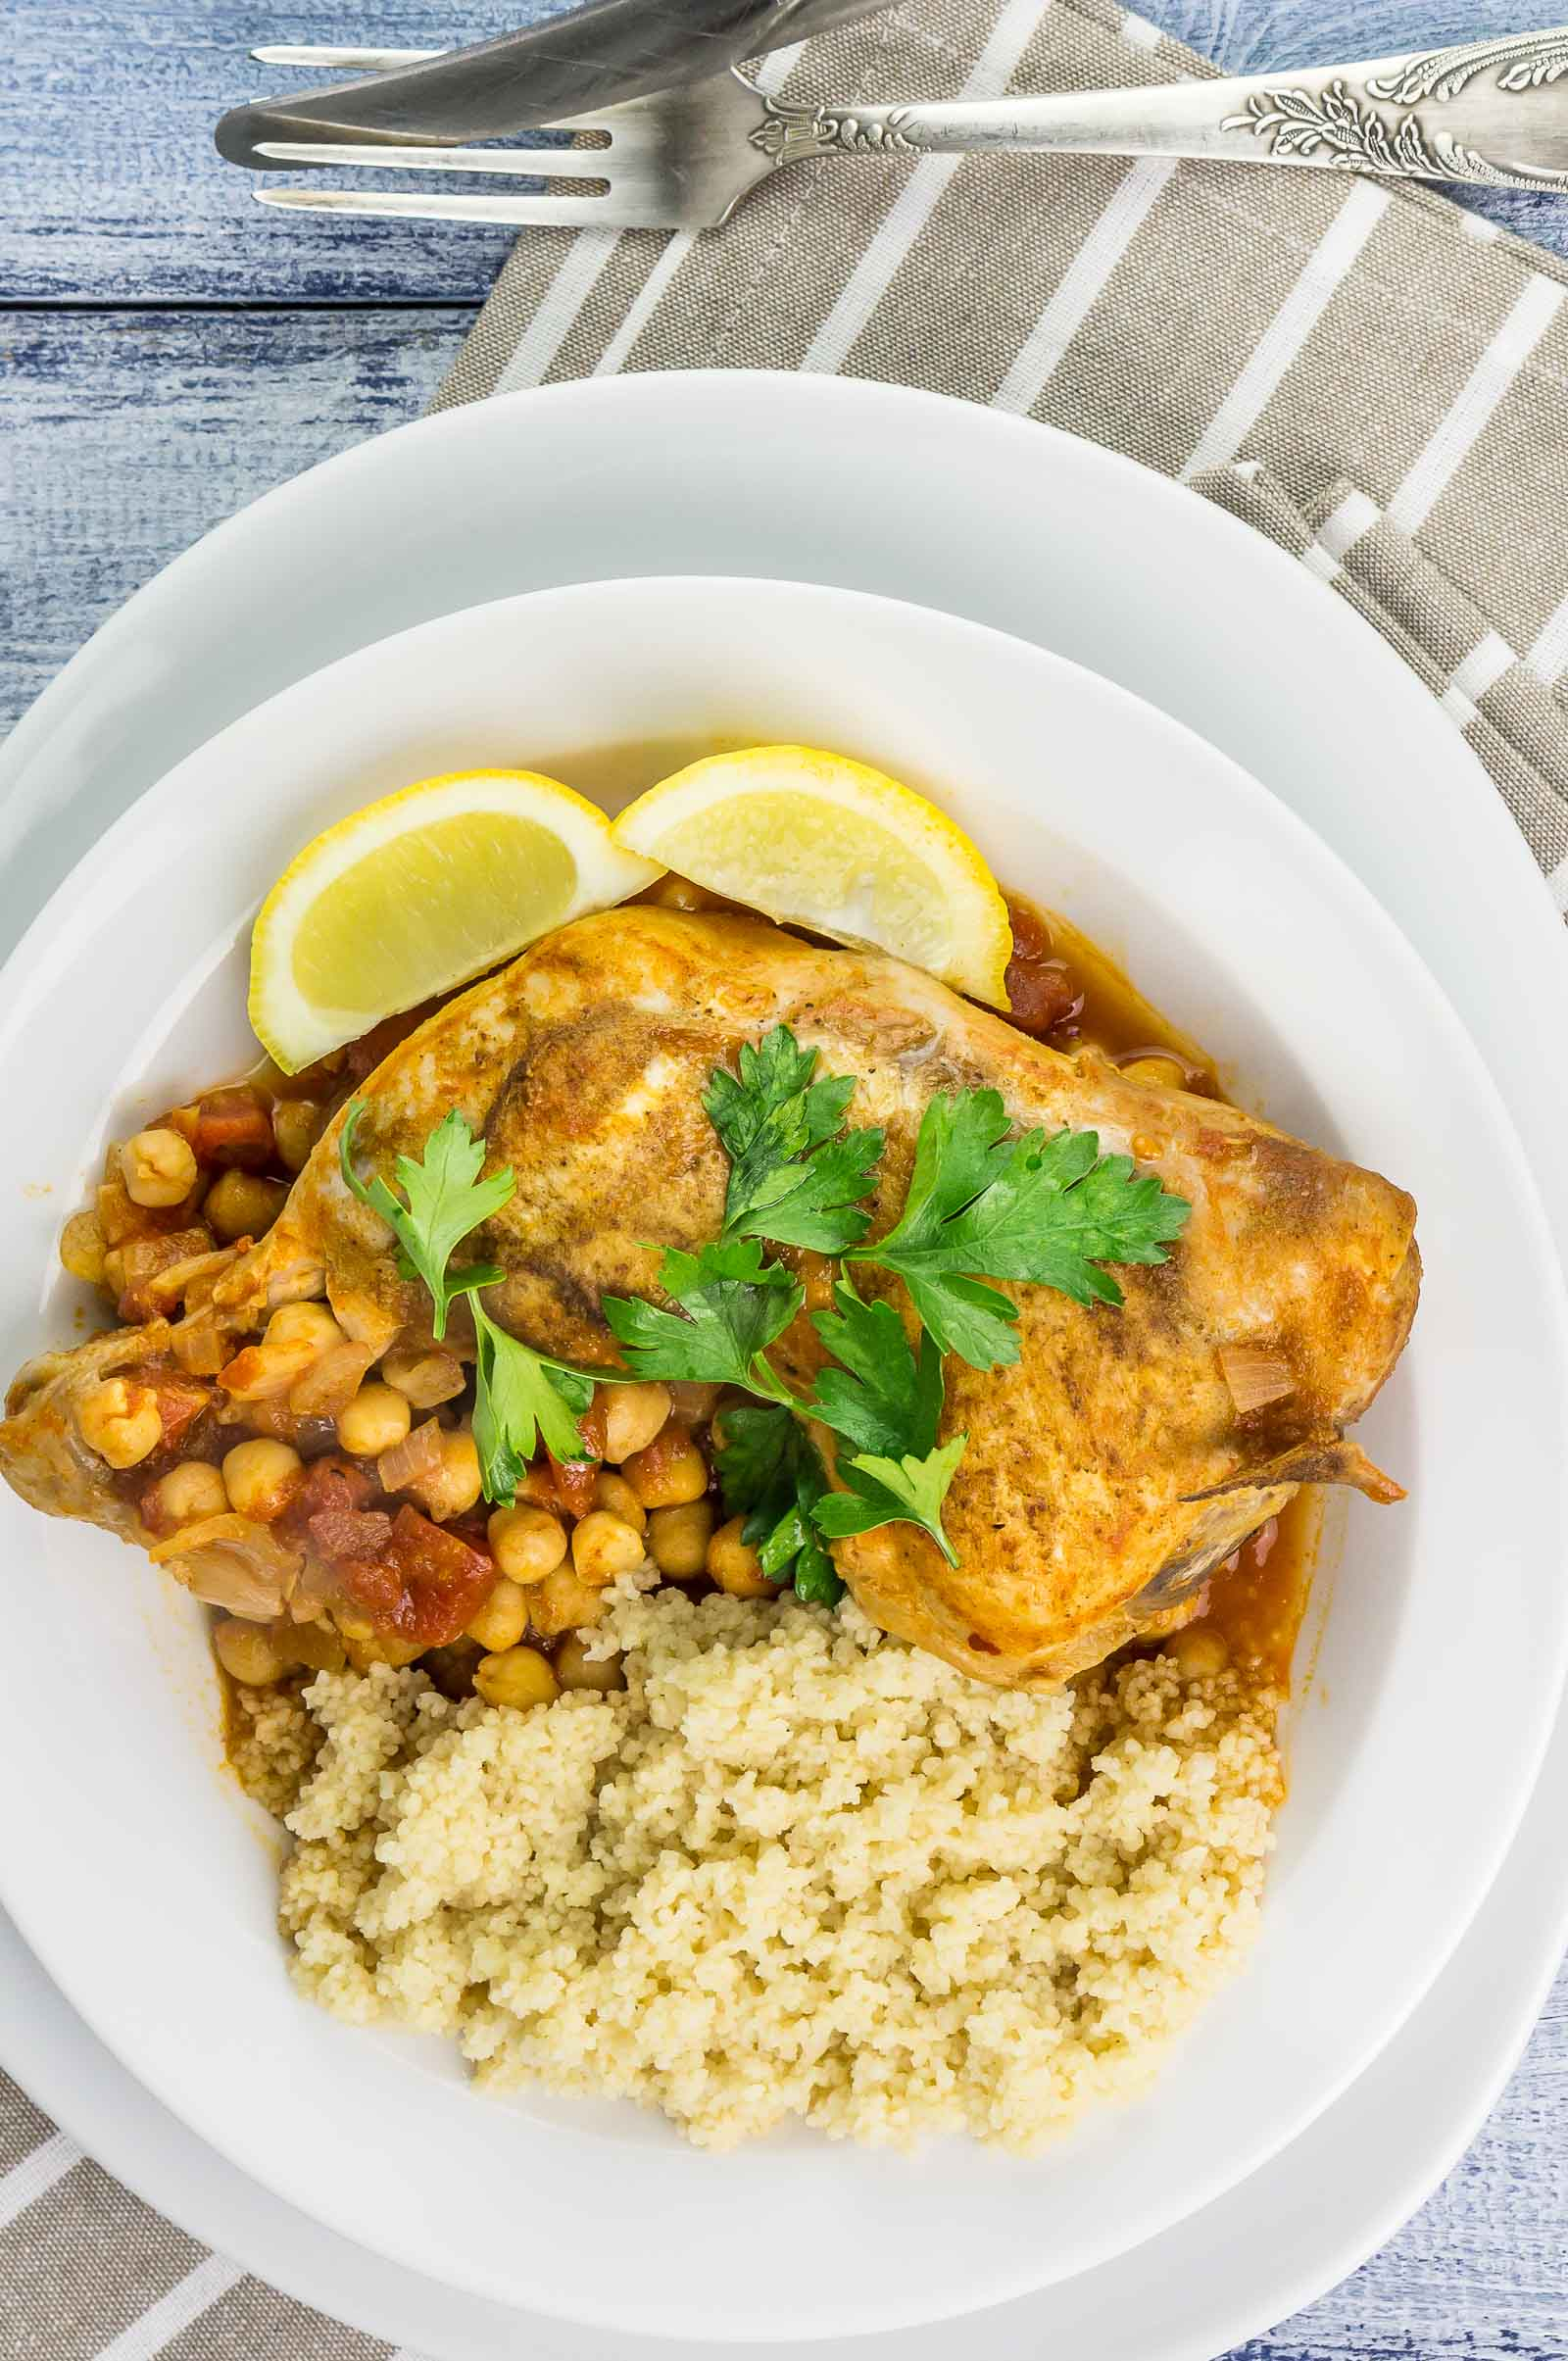 Harissa chicken